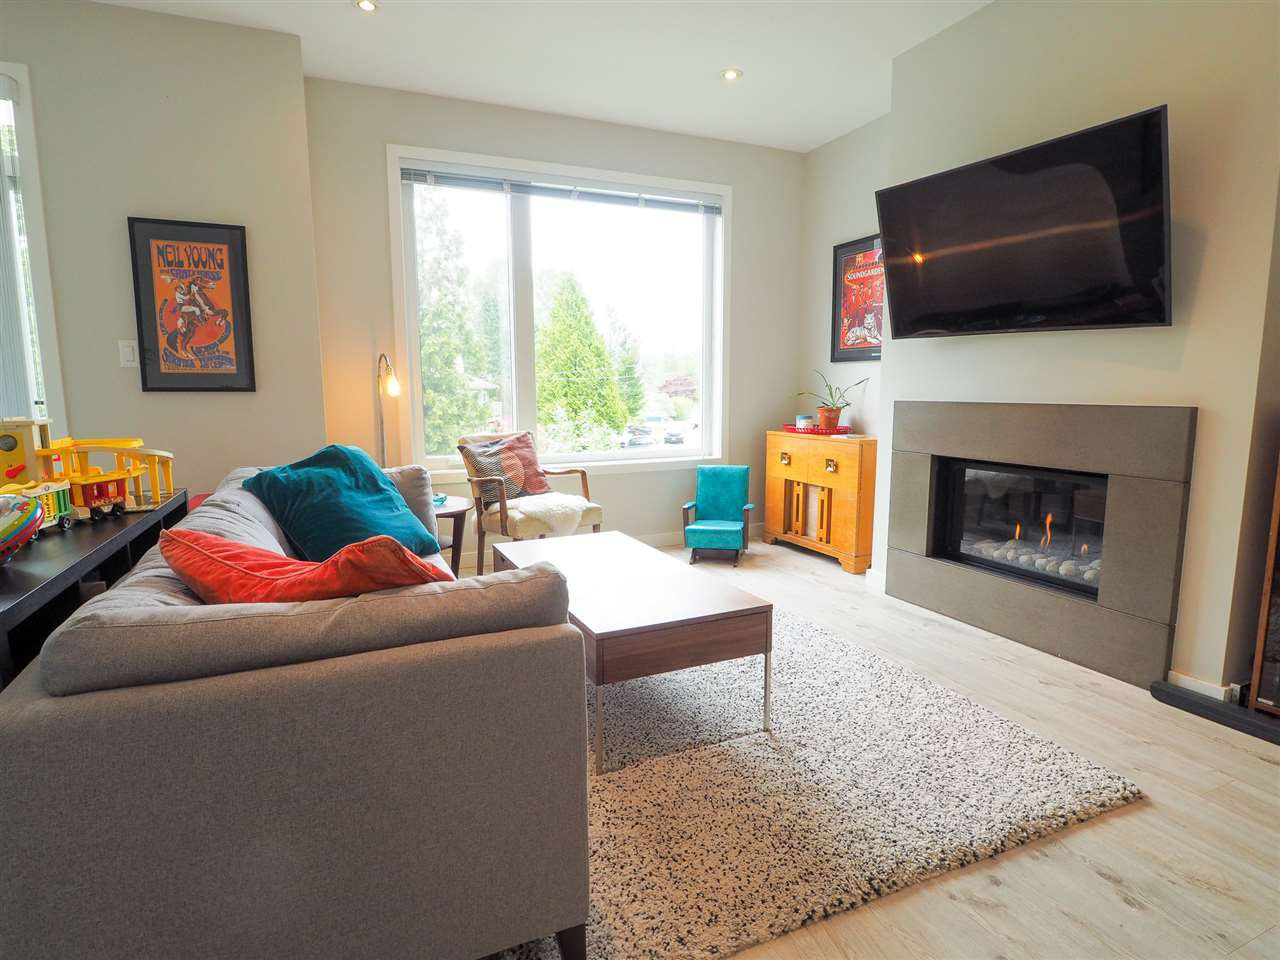 """Main Photo: 9 41488 BRENNAN Road in Squamish: Brackendale House 1/2 Duplex for sale in """"RIVENDALE"""" : MLS®# R2457979"""